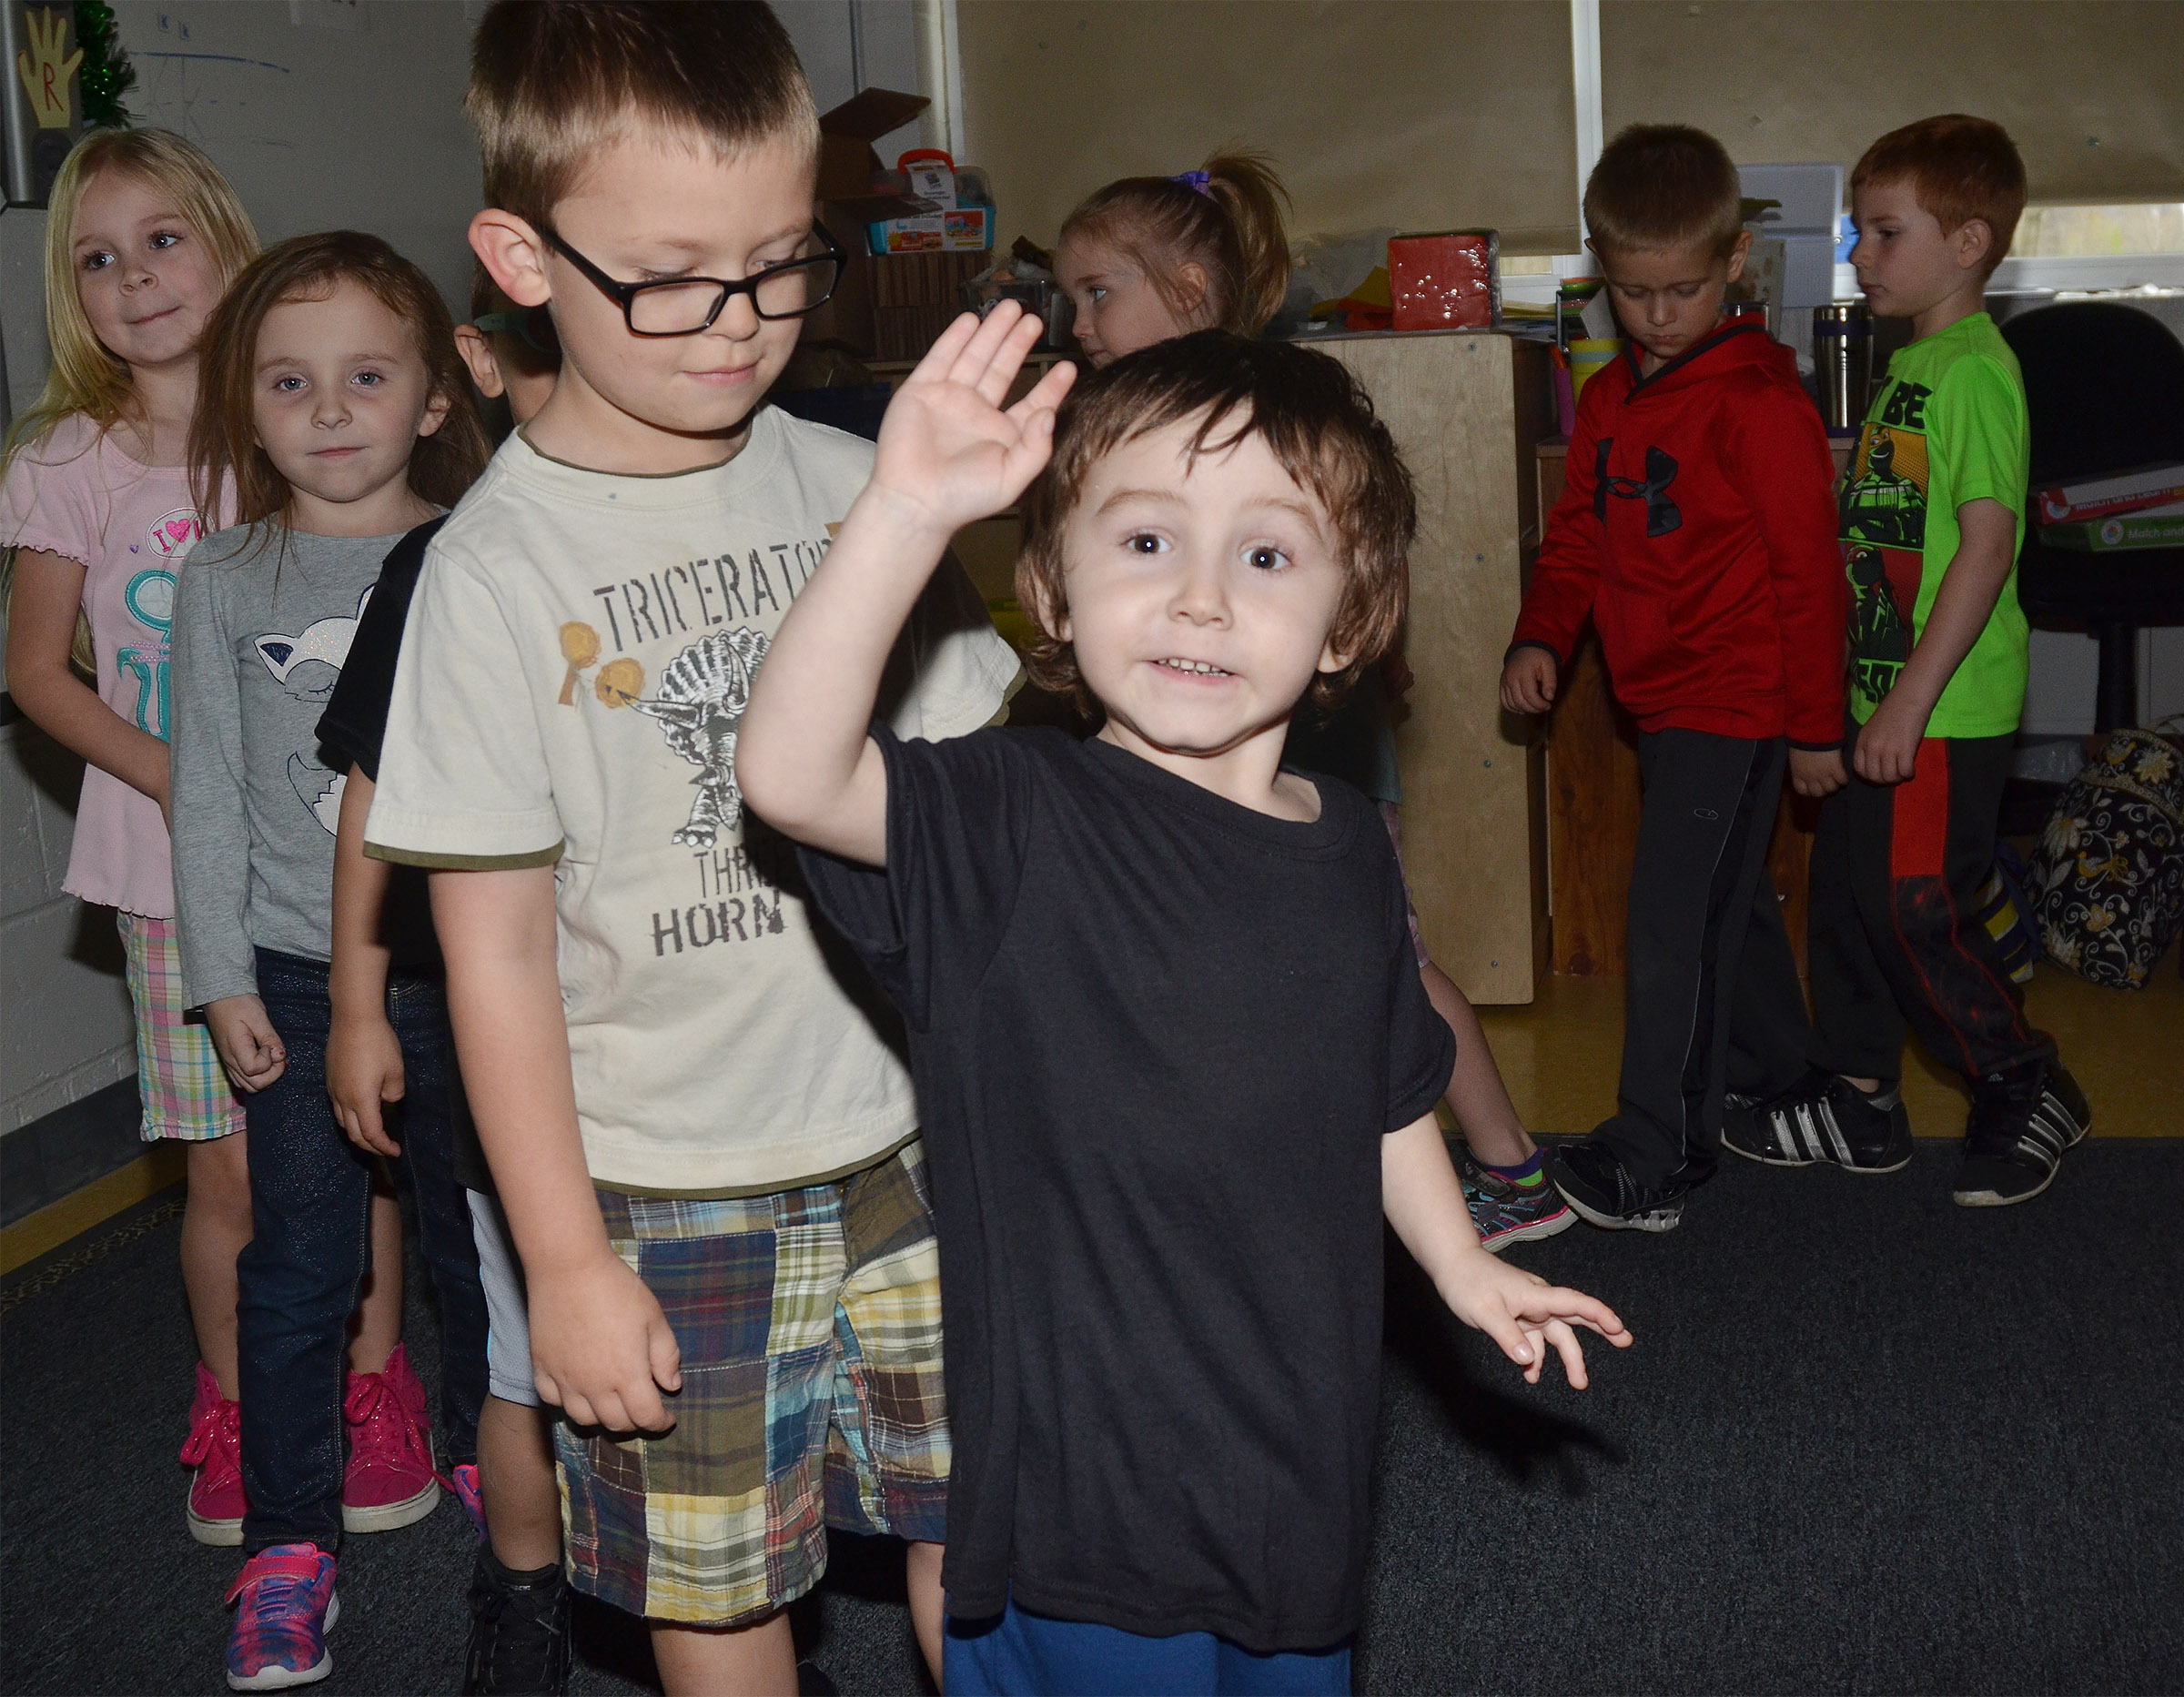 CES preschool student Noelan McMahan waves hello to his preschool teacher, Sherry Cowherd, as he dances with his classmates.